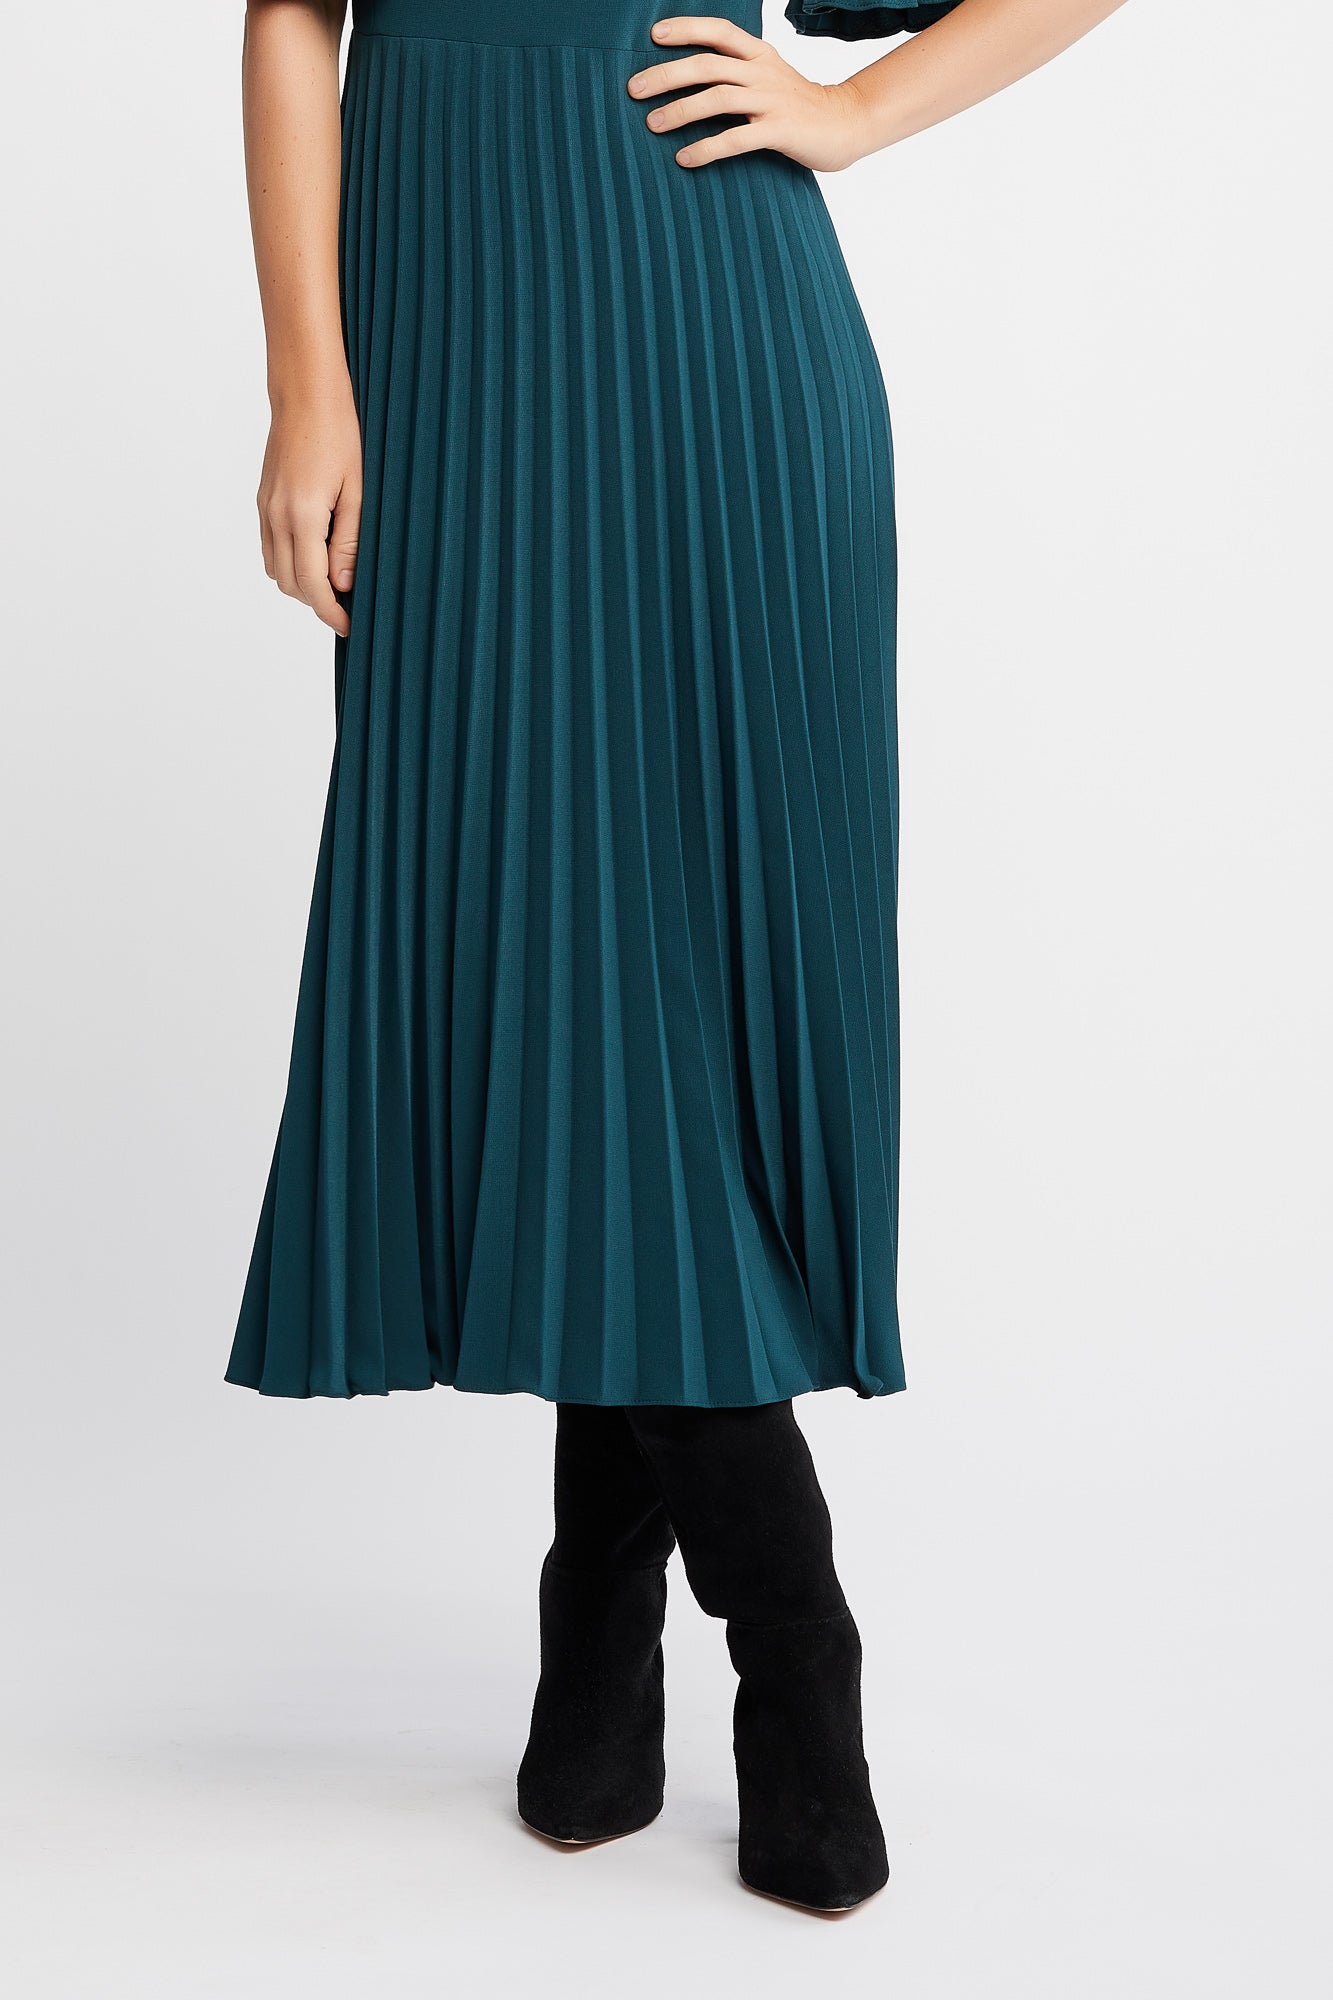 Cannelle Dress in Emerald Green with Flared Pleated Sleeves and Skirt